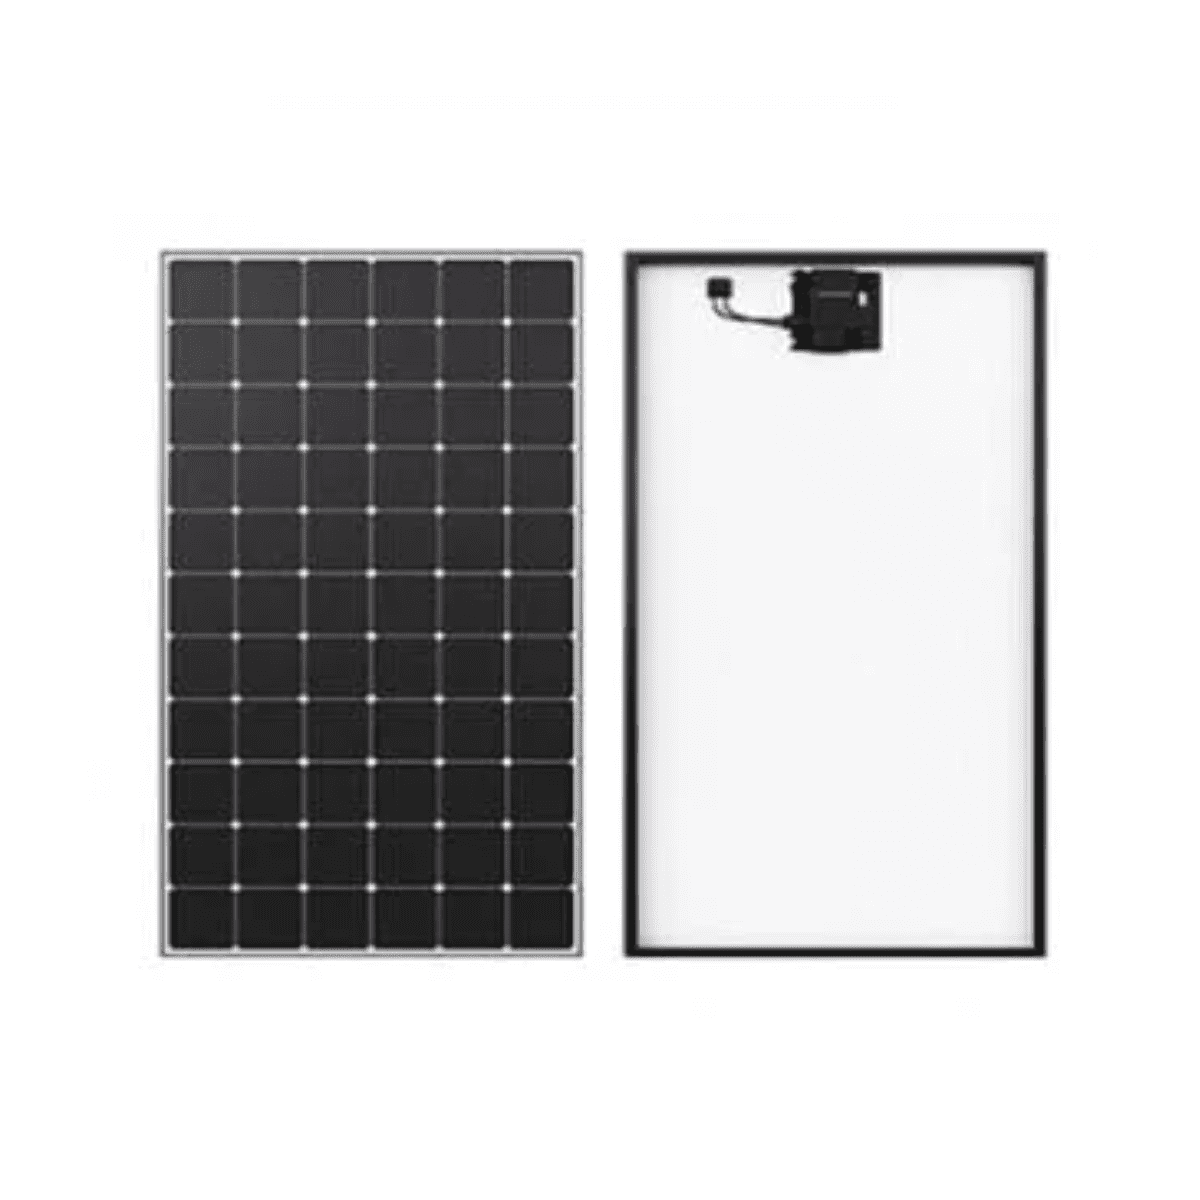 SunPower Maxeon 5 Solar Panels on Sale